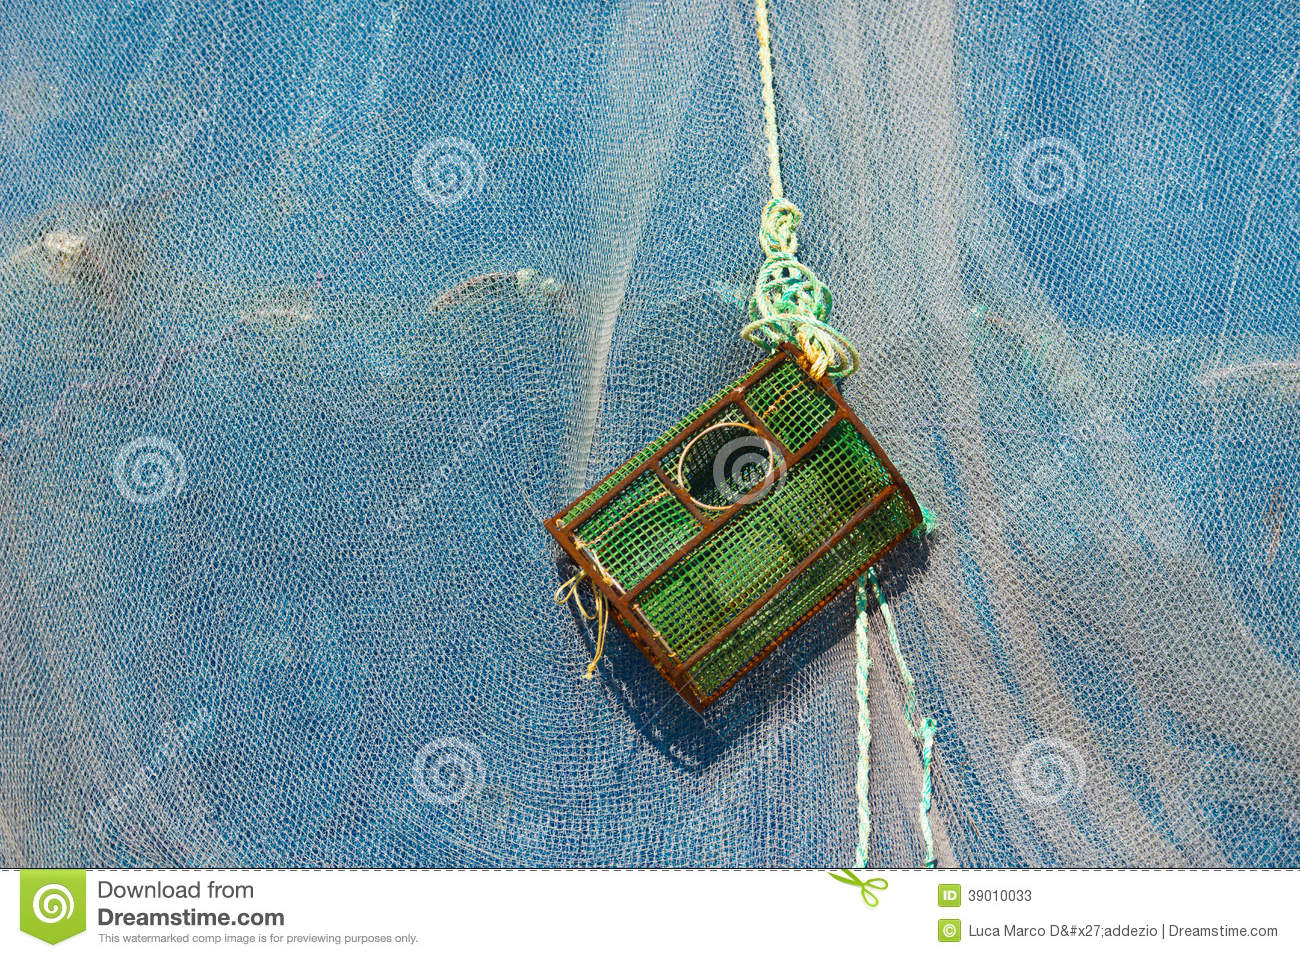 Lobster Pot Or Crab Trap Against A Fishing Net Stock Image - Image ...